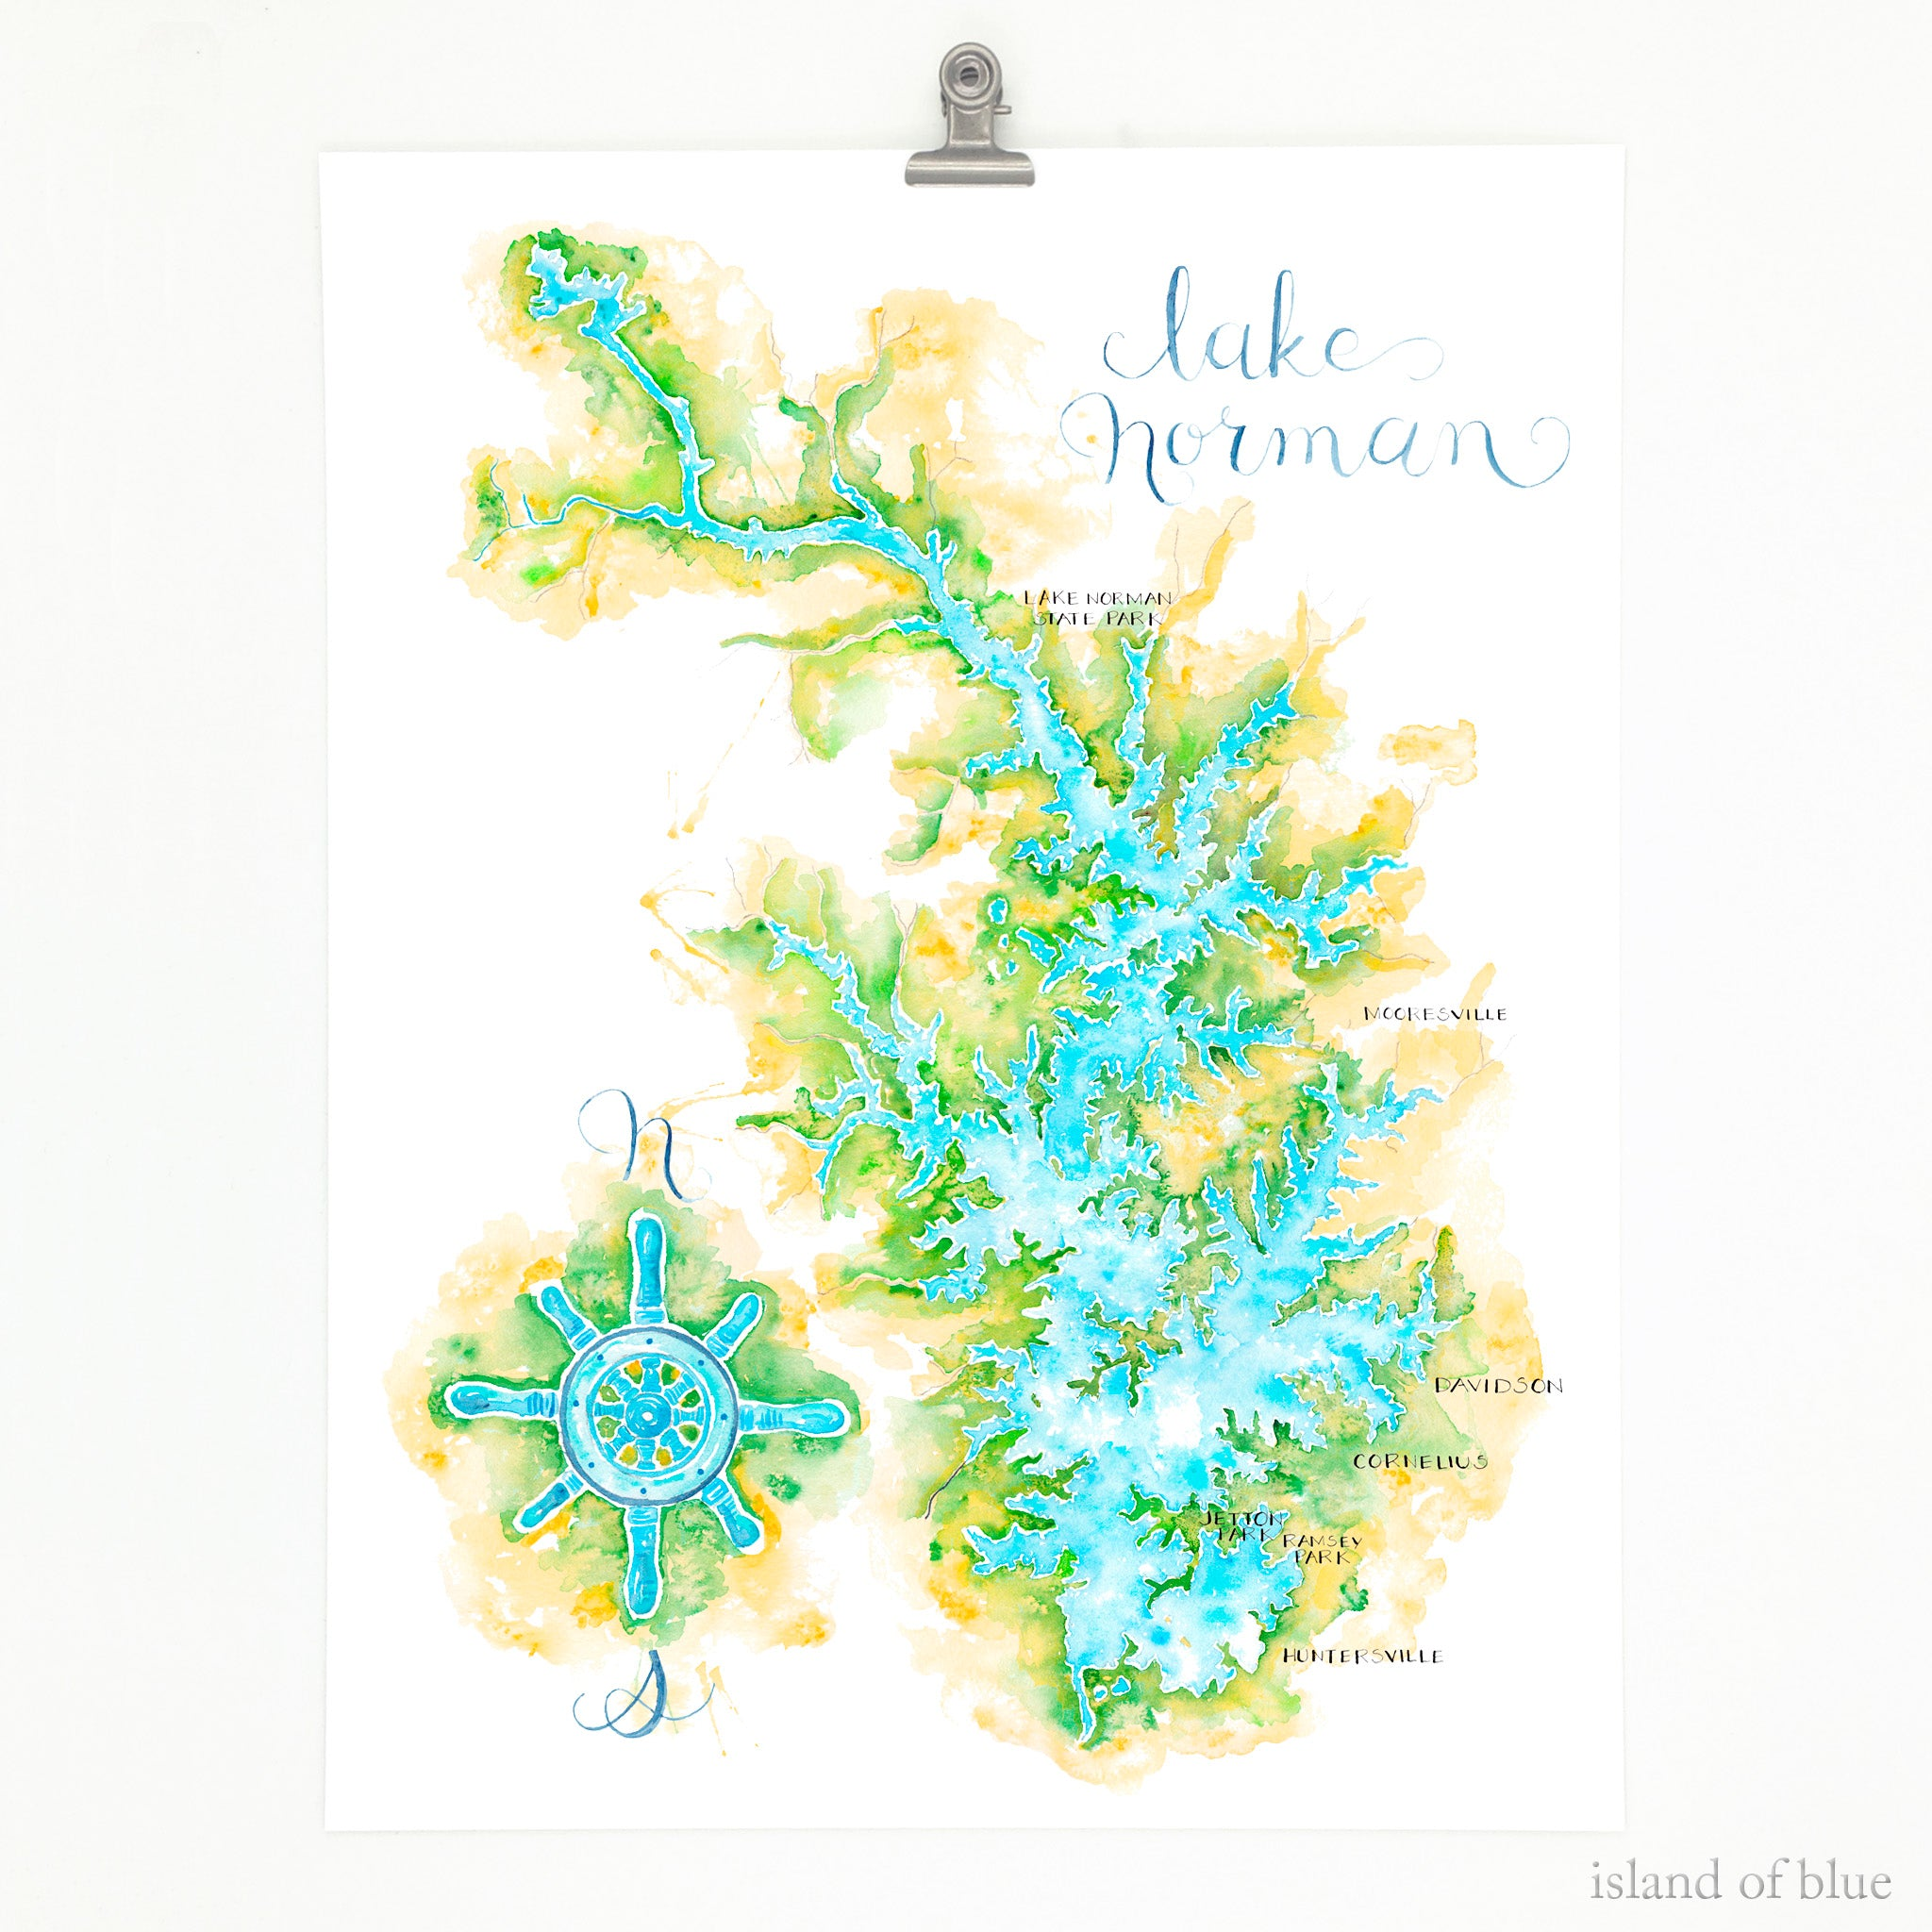 lake norman art, illustrative map fine art print, north carolina.